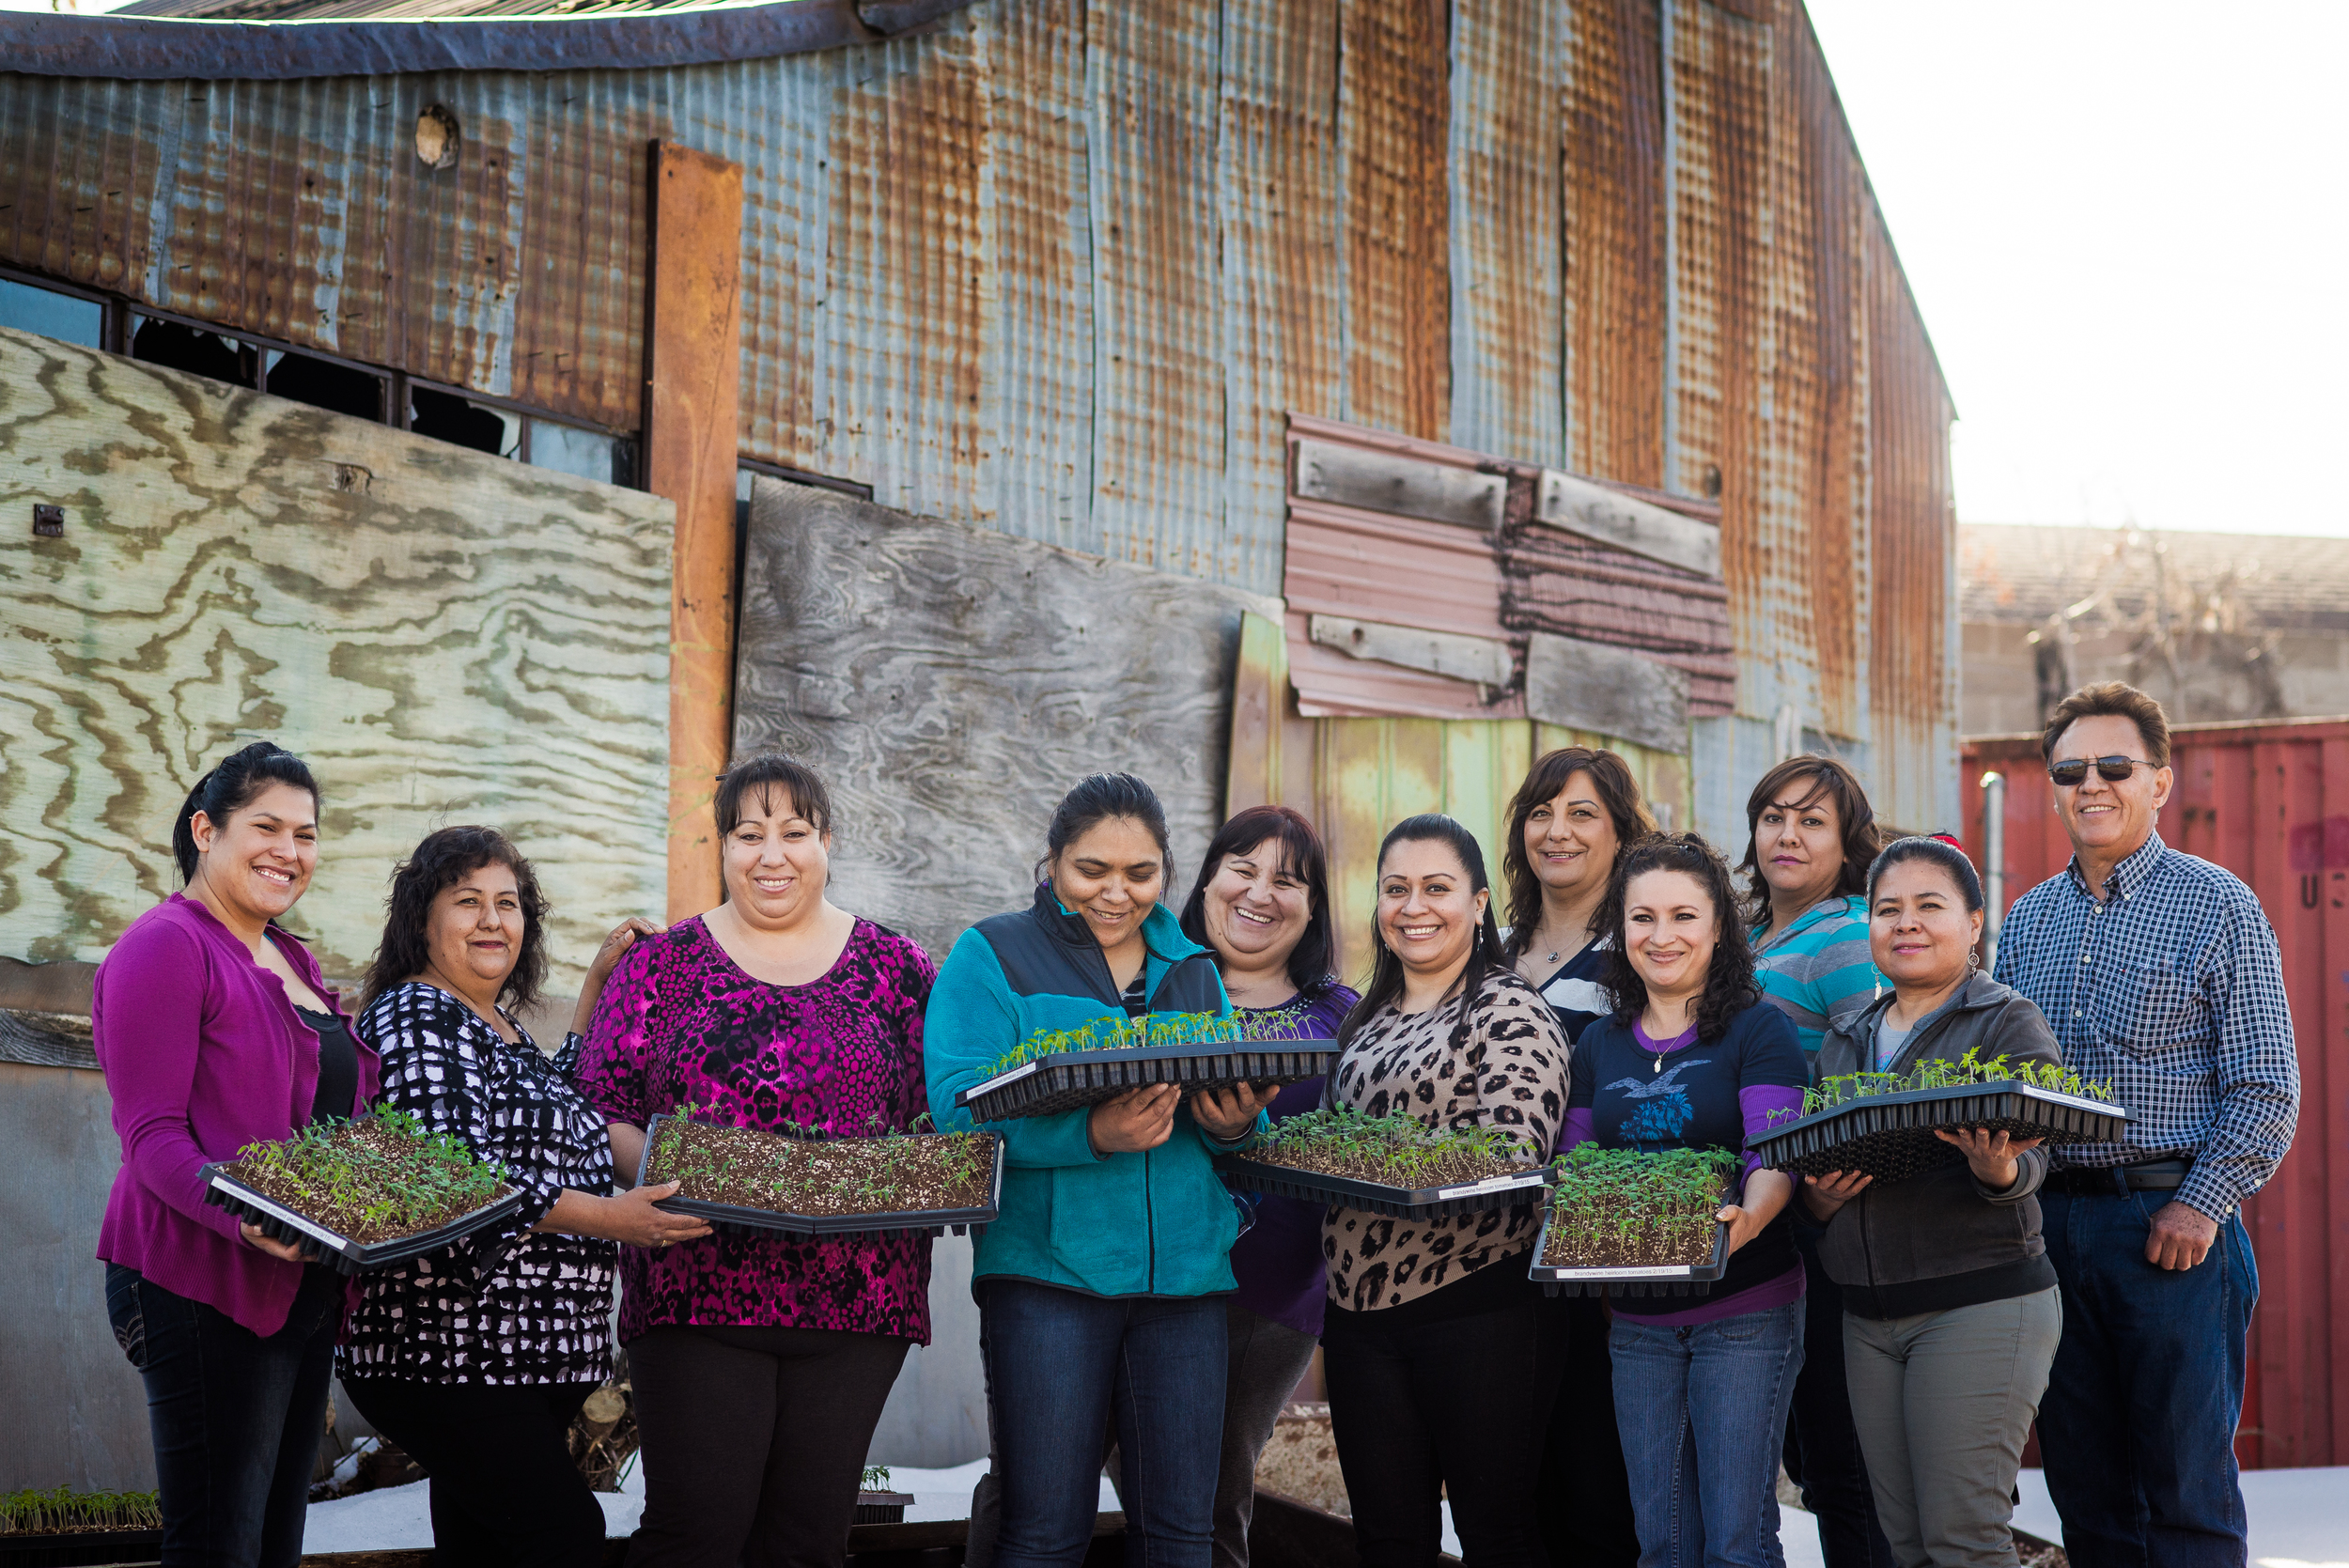 Promotoras with their children in front of the old greenhouse site, Promotoras as a group, Promotoras with seedlings for the 2015 Revision gardens, a final staged image taken in the Revision kitchens with the Promotoras to show the power of La Cocina and the cooking classes.